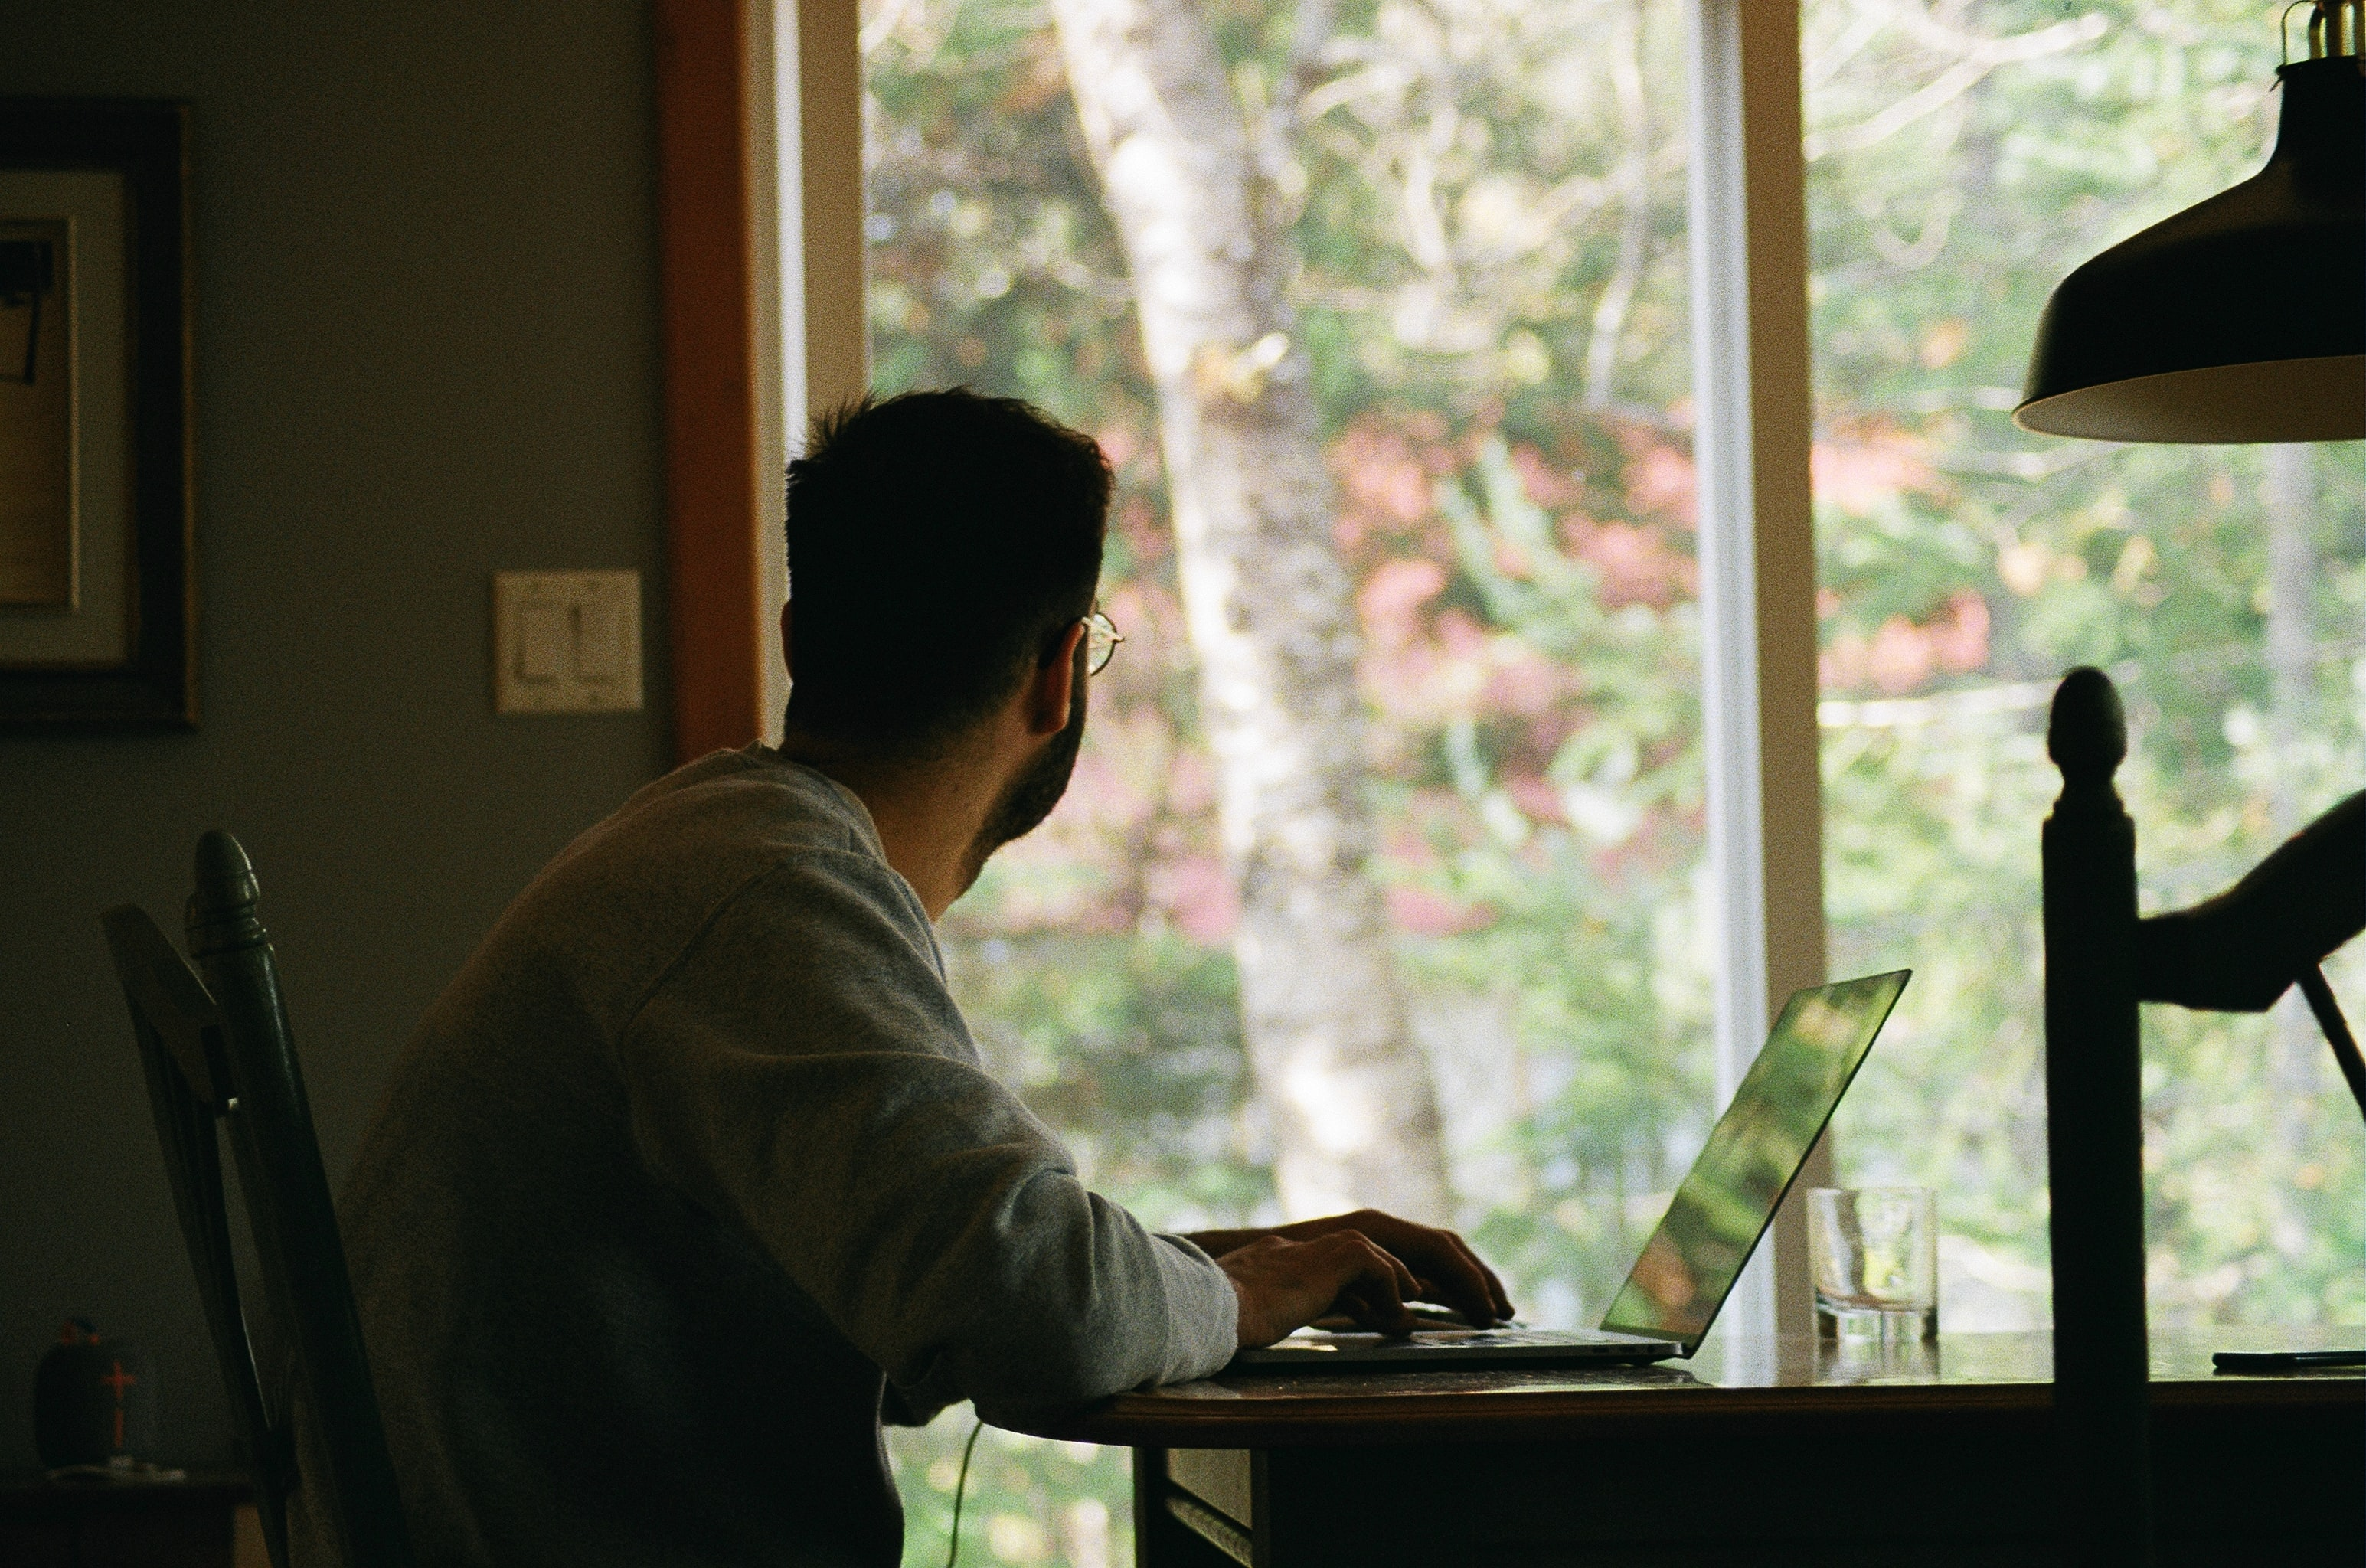 A person looks out the window from their home office.